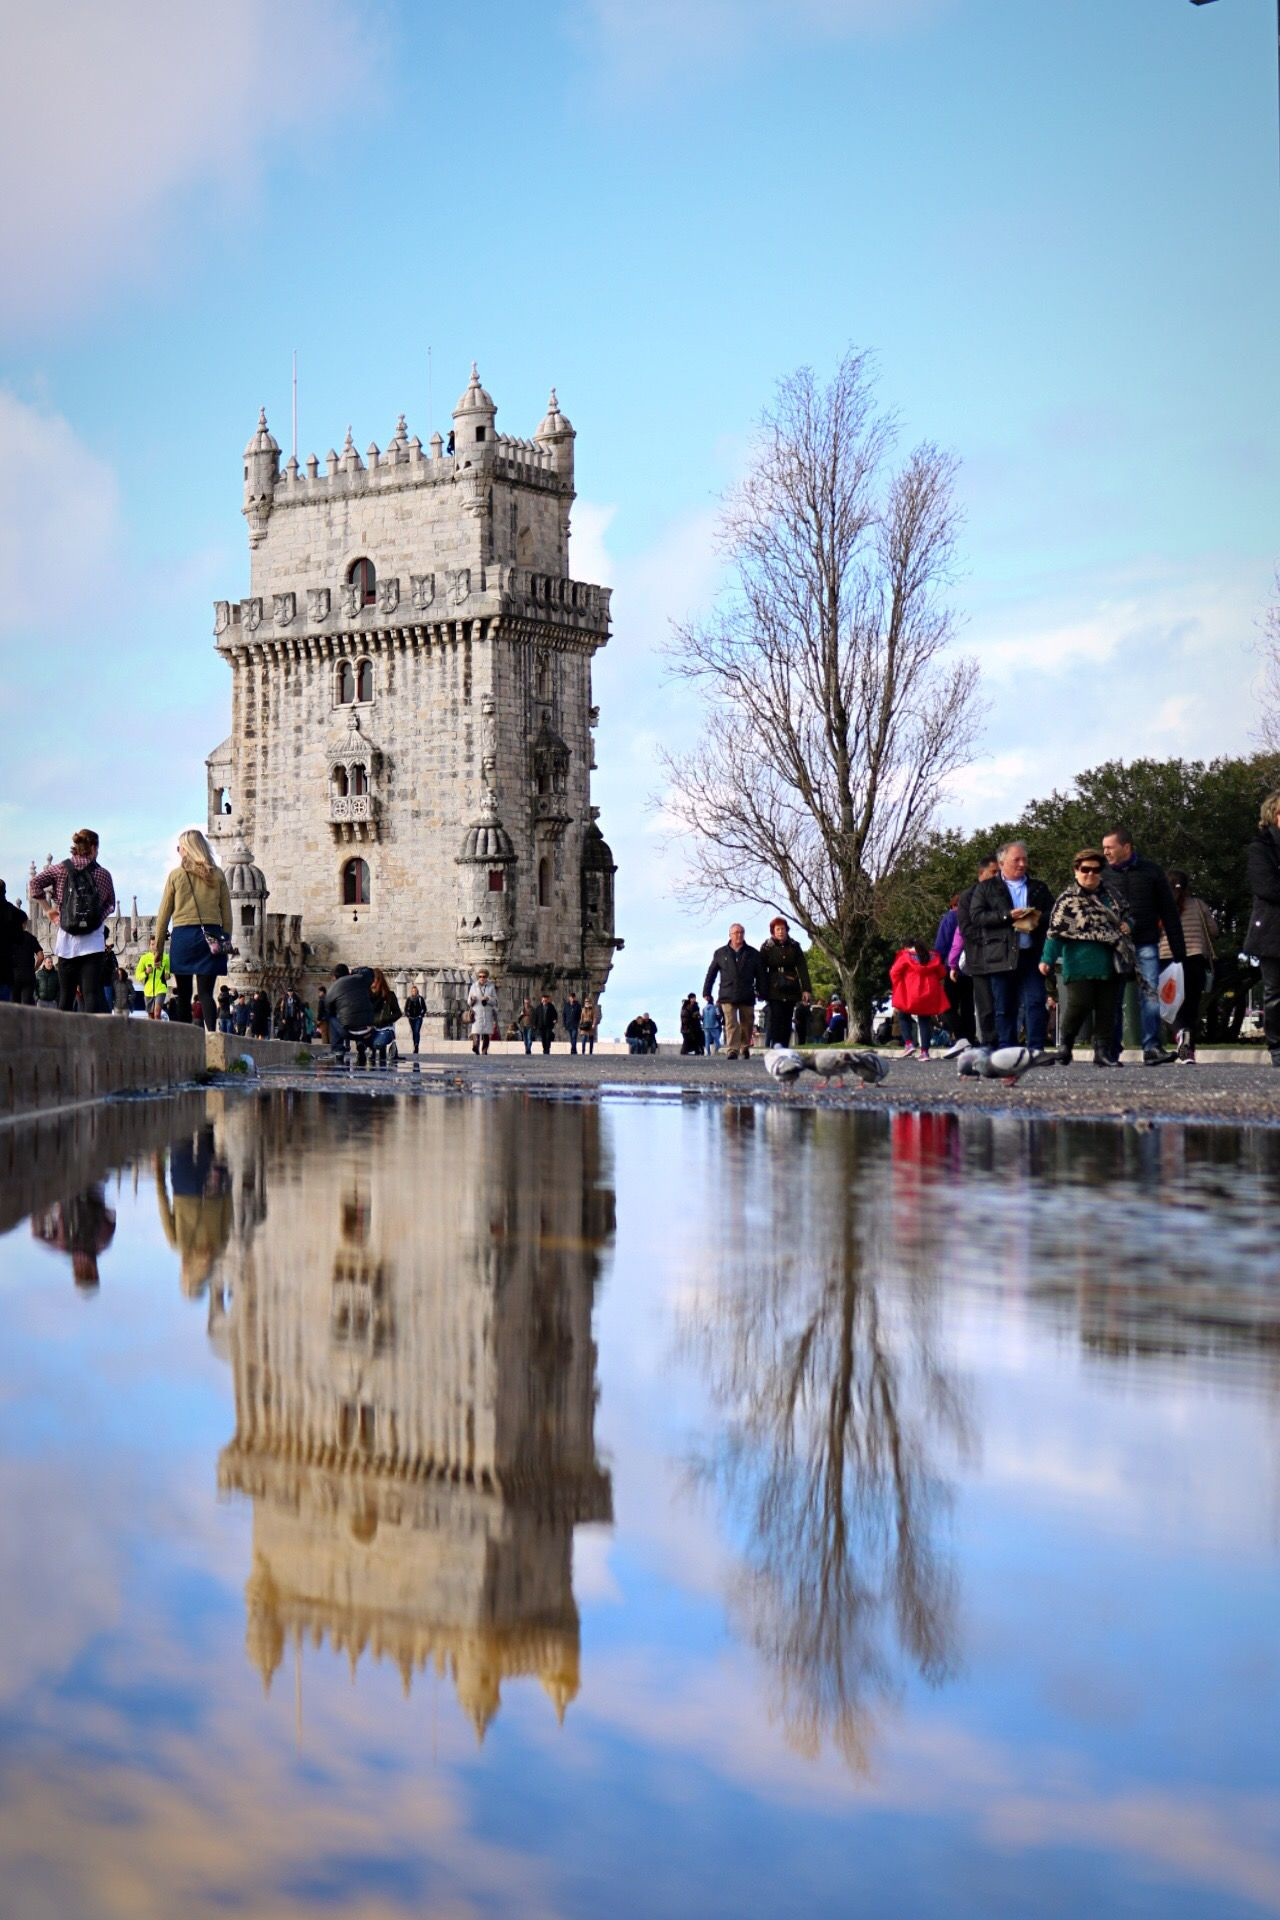 Adult Adults Only Architecture Belem Tower Belém Building Exterior City Clear Sky Day EyeEm Best Shots History Large Group Of People Nature Outdoors People Reflection Sky Statue Streetphotography Taking Photos Travel Destinations Tree Water Water Reflections